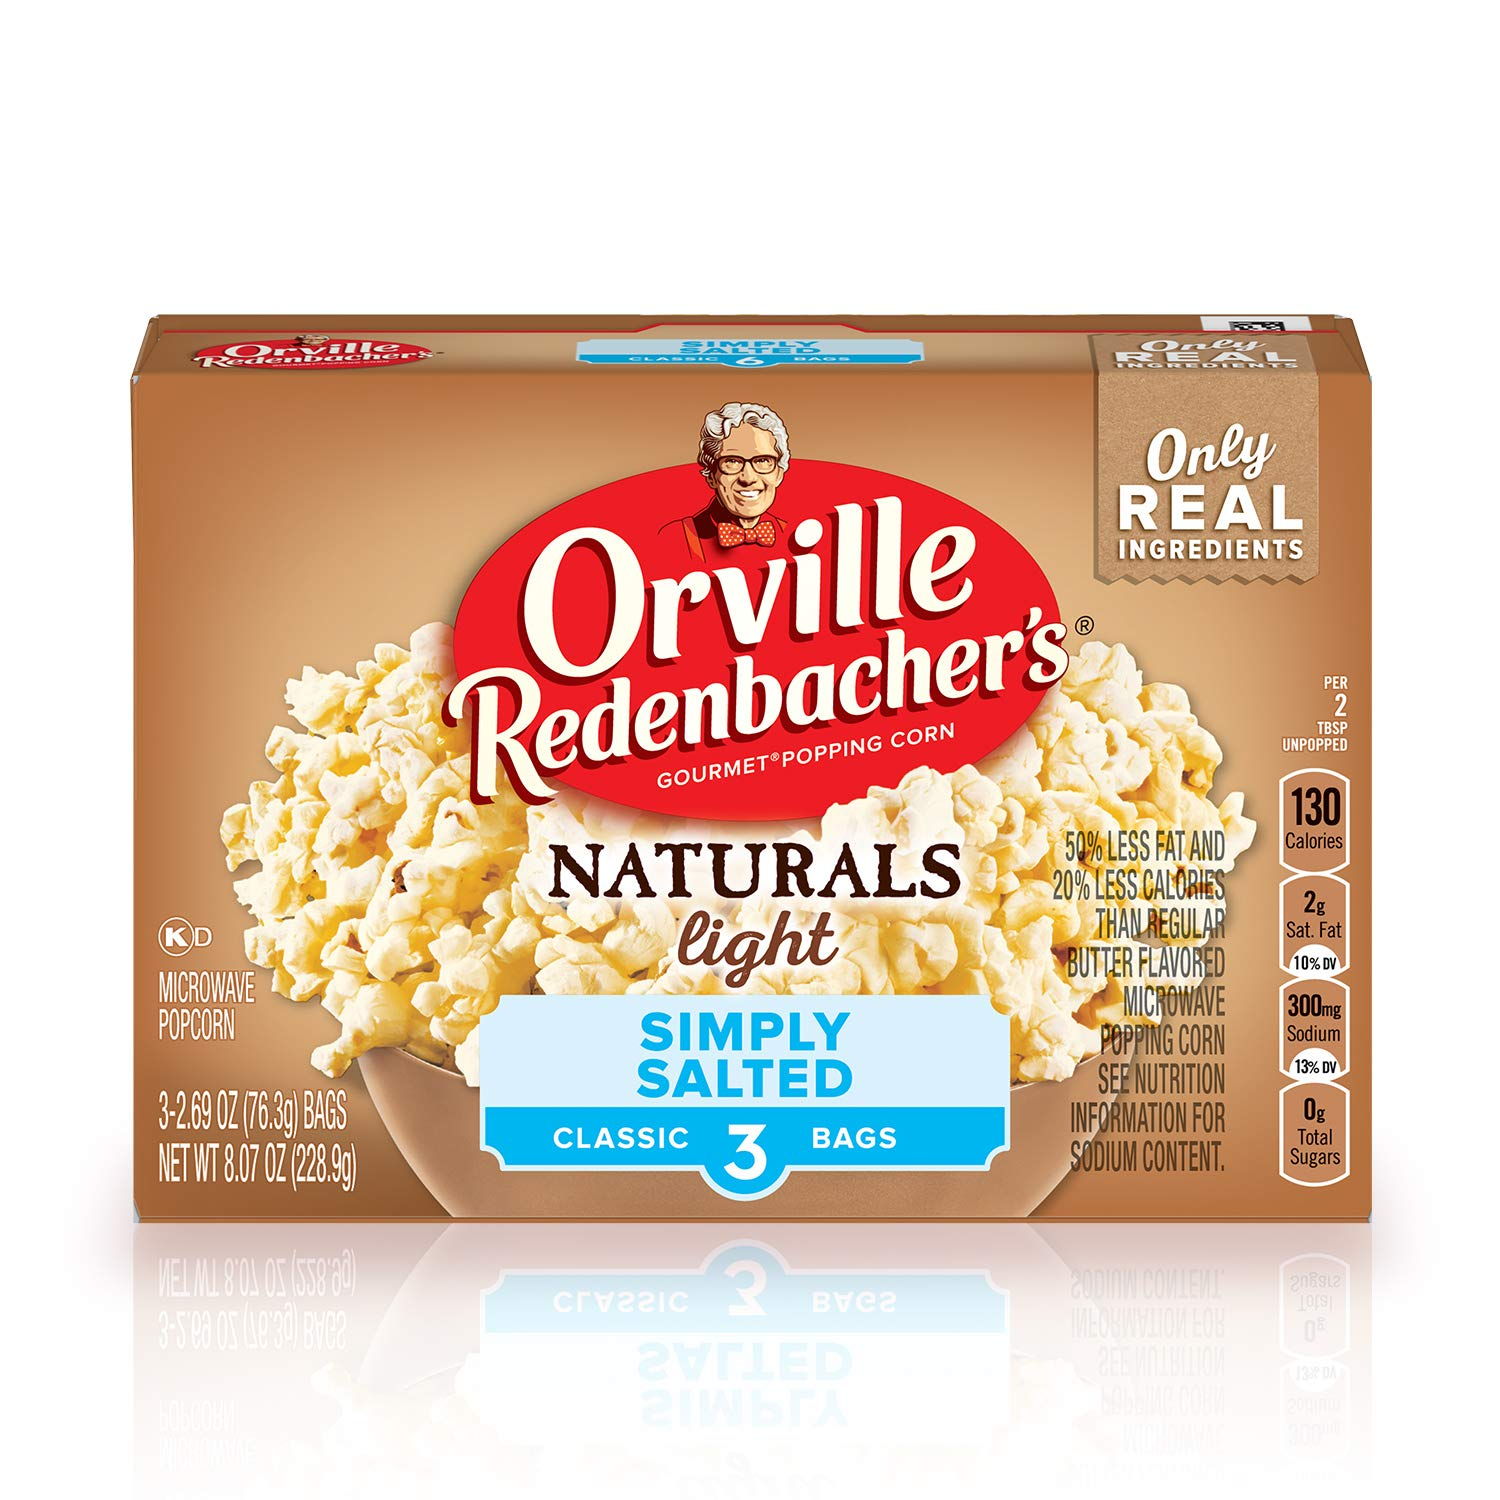 Orville Redenbacher's Naturals Light Salted Clas online shopping Popcorn Simply Colorado Springs Mall